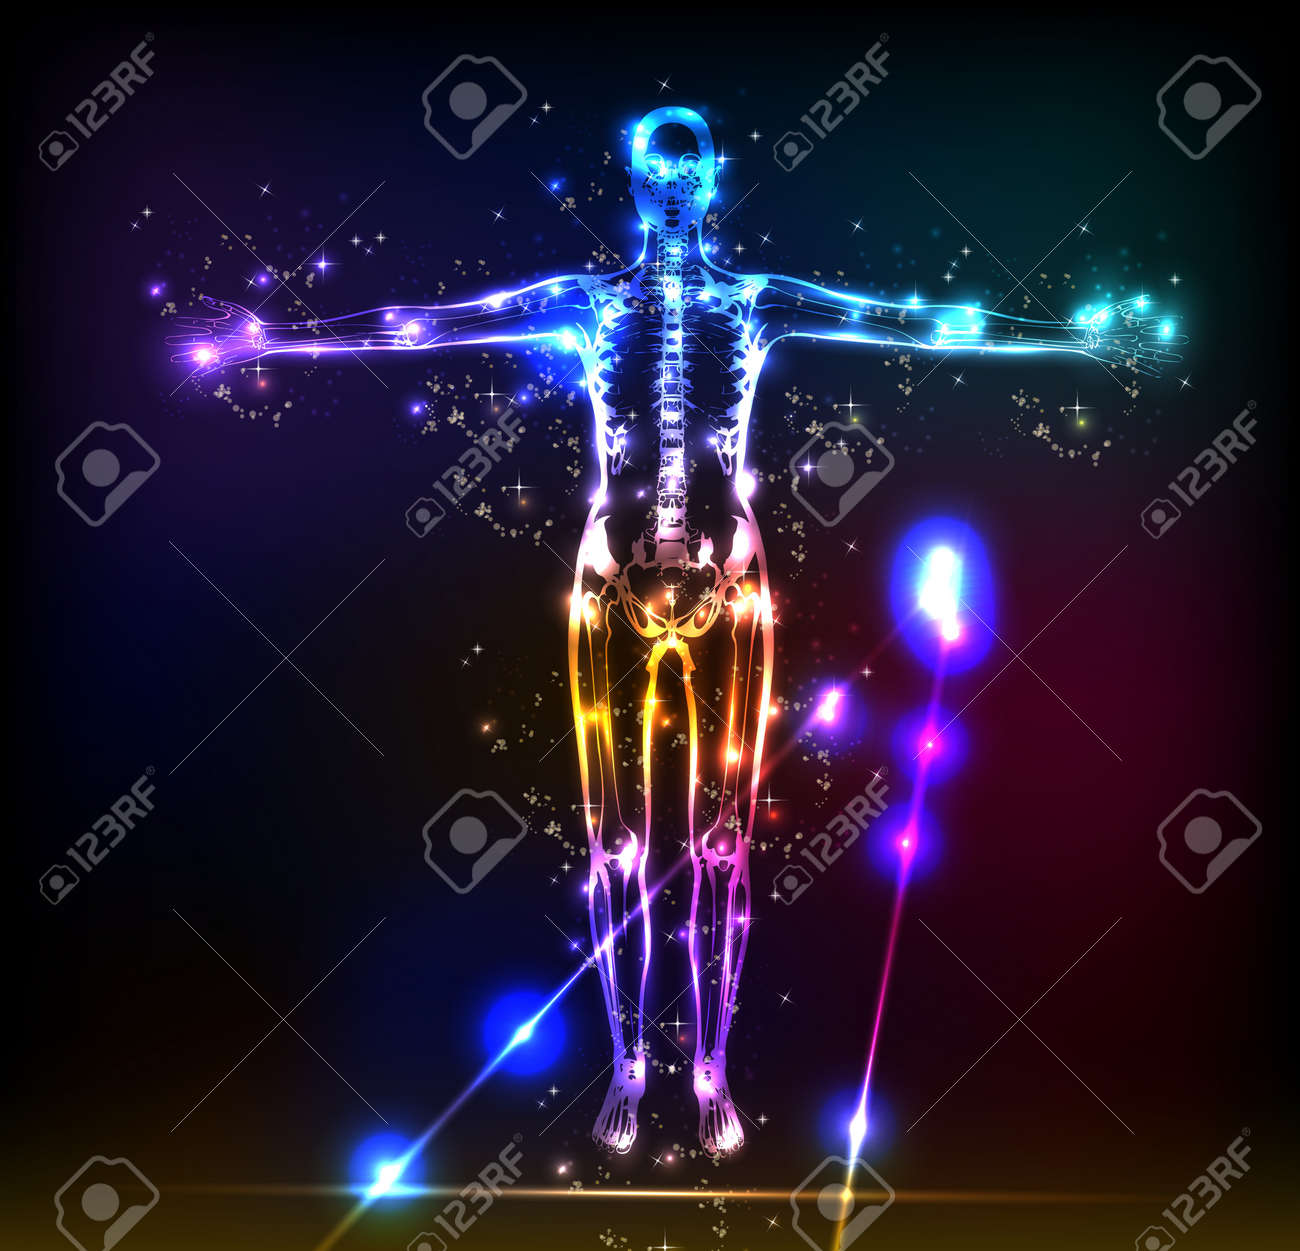 Background image body - Abstract Human Body Background Neon Design Stock Vector 12978651